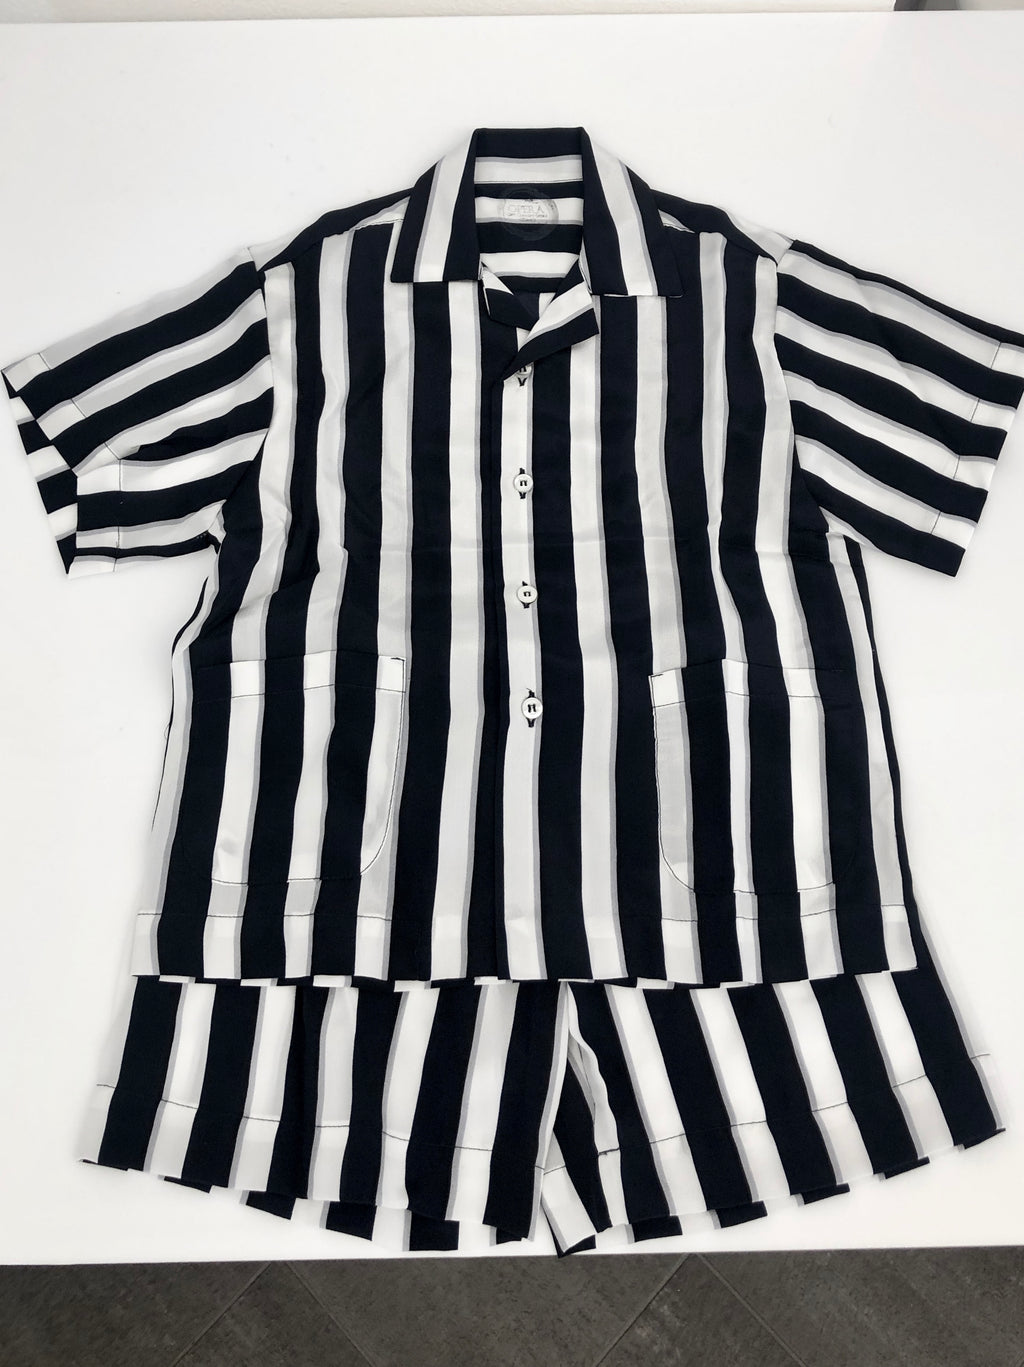 Silk. Childs man shape stripped Pijamas . Pijama in Seta Comasca a Righe per bambino